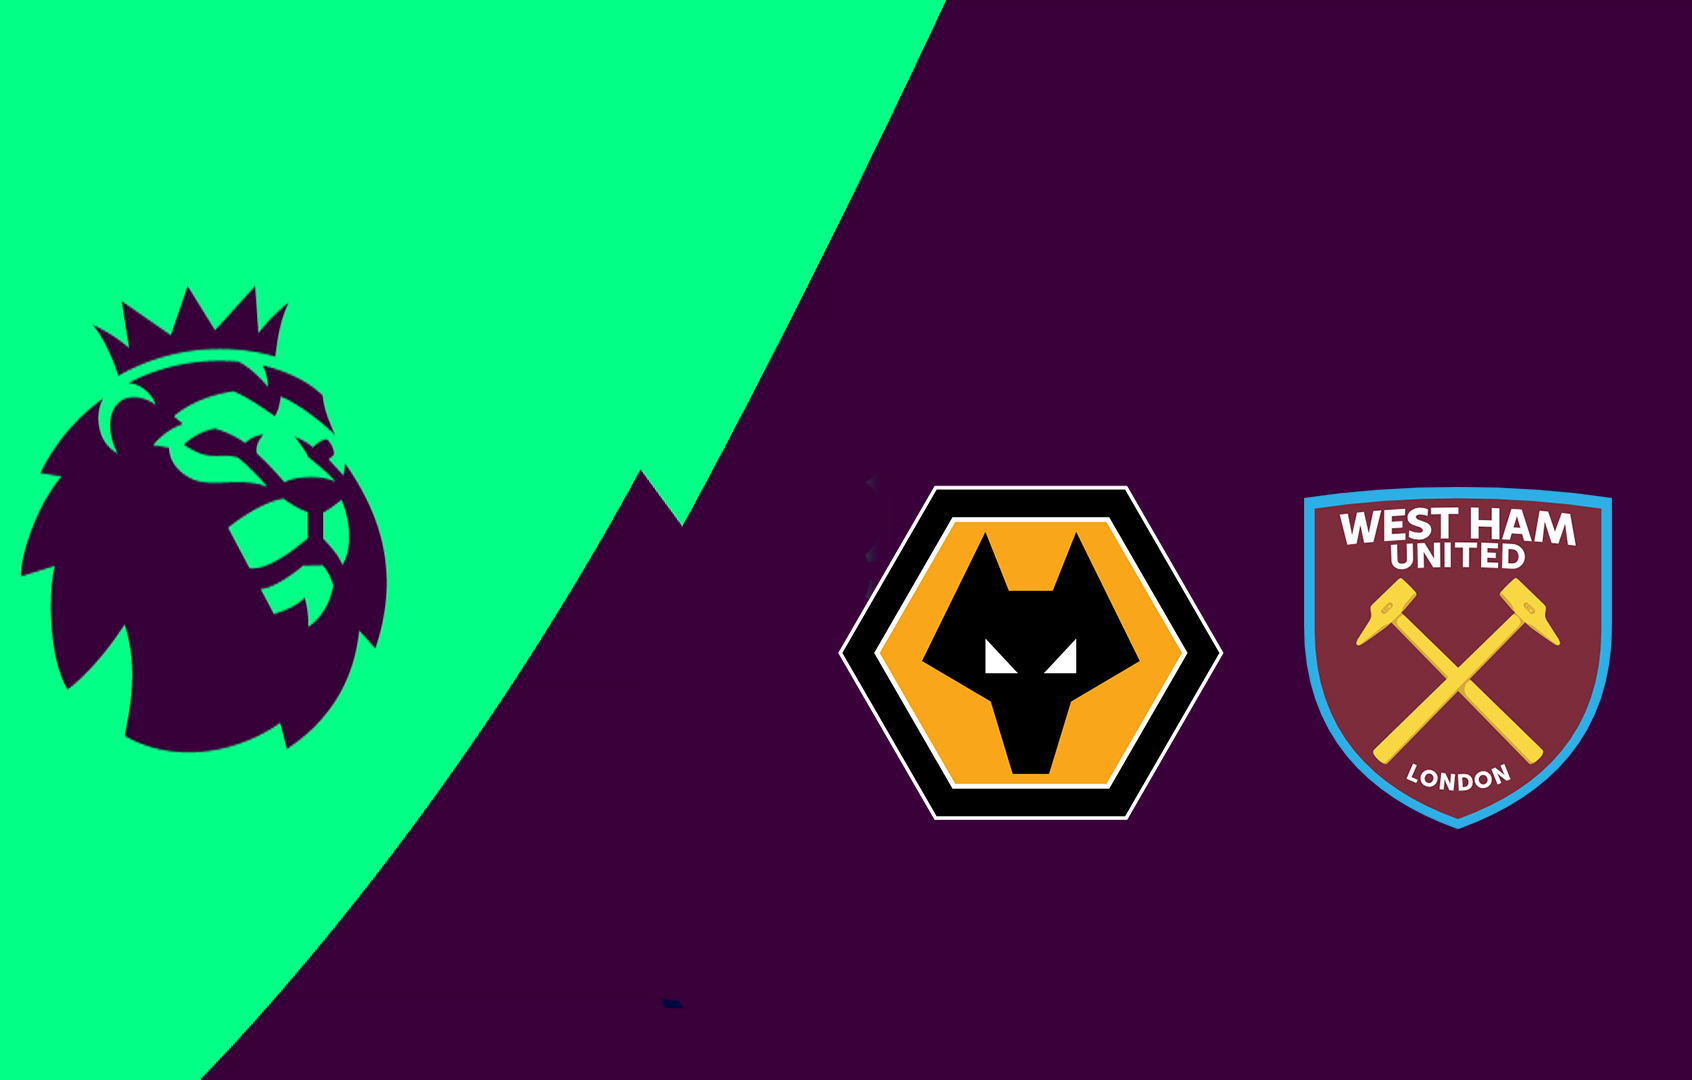 soi-keo-ca-cuoc-bong-da-ngay-5-12-wolverhampton-vs-west-ham-so-say-o-hang-cao-b9 1